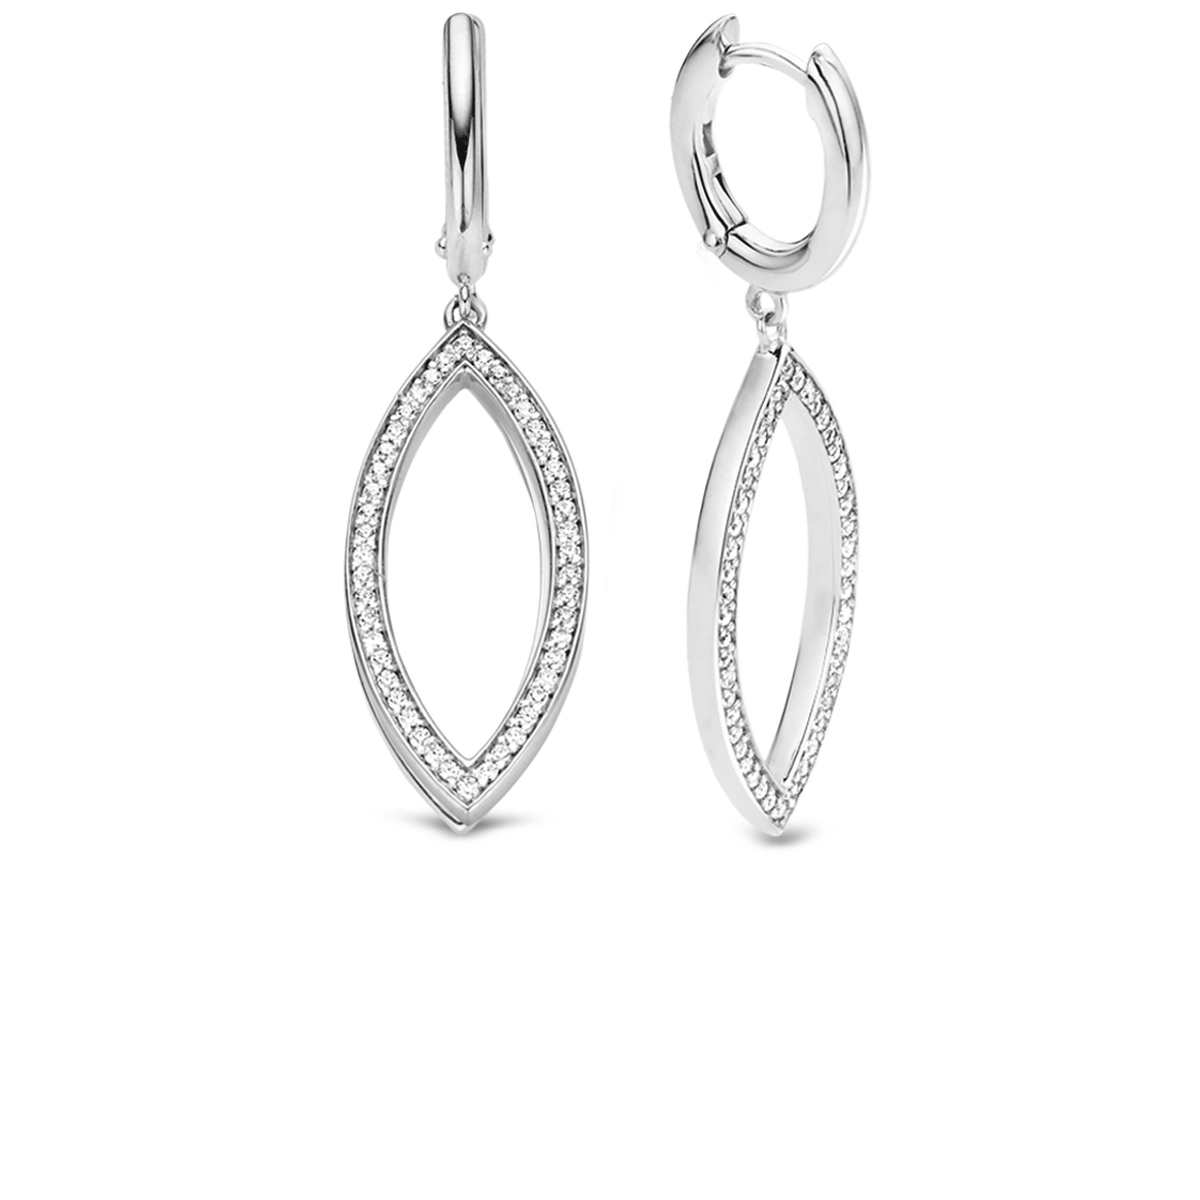 TI SENTO - Milano Earrings 7719ZI